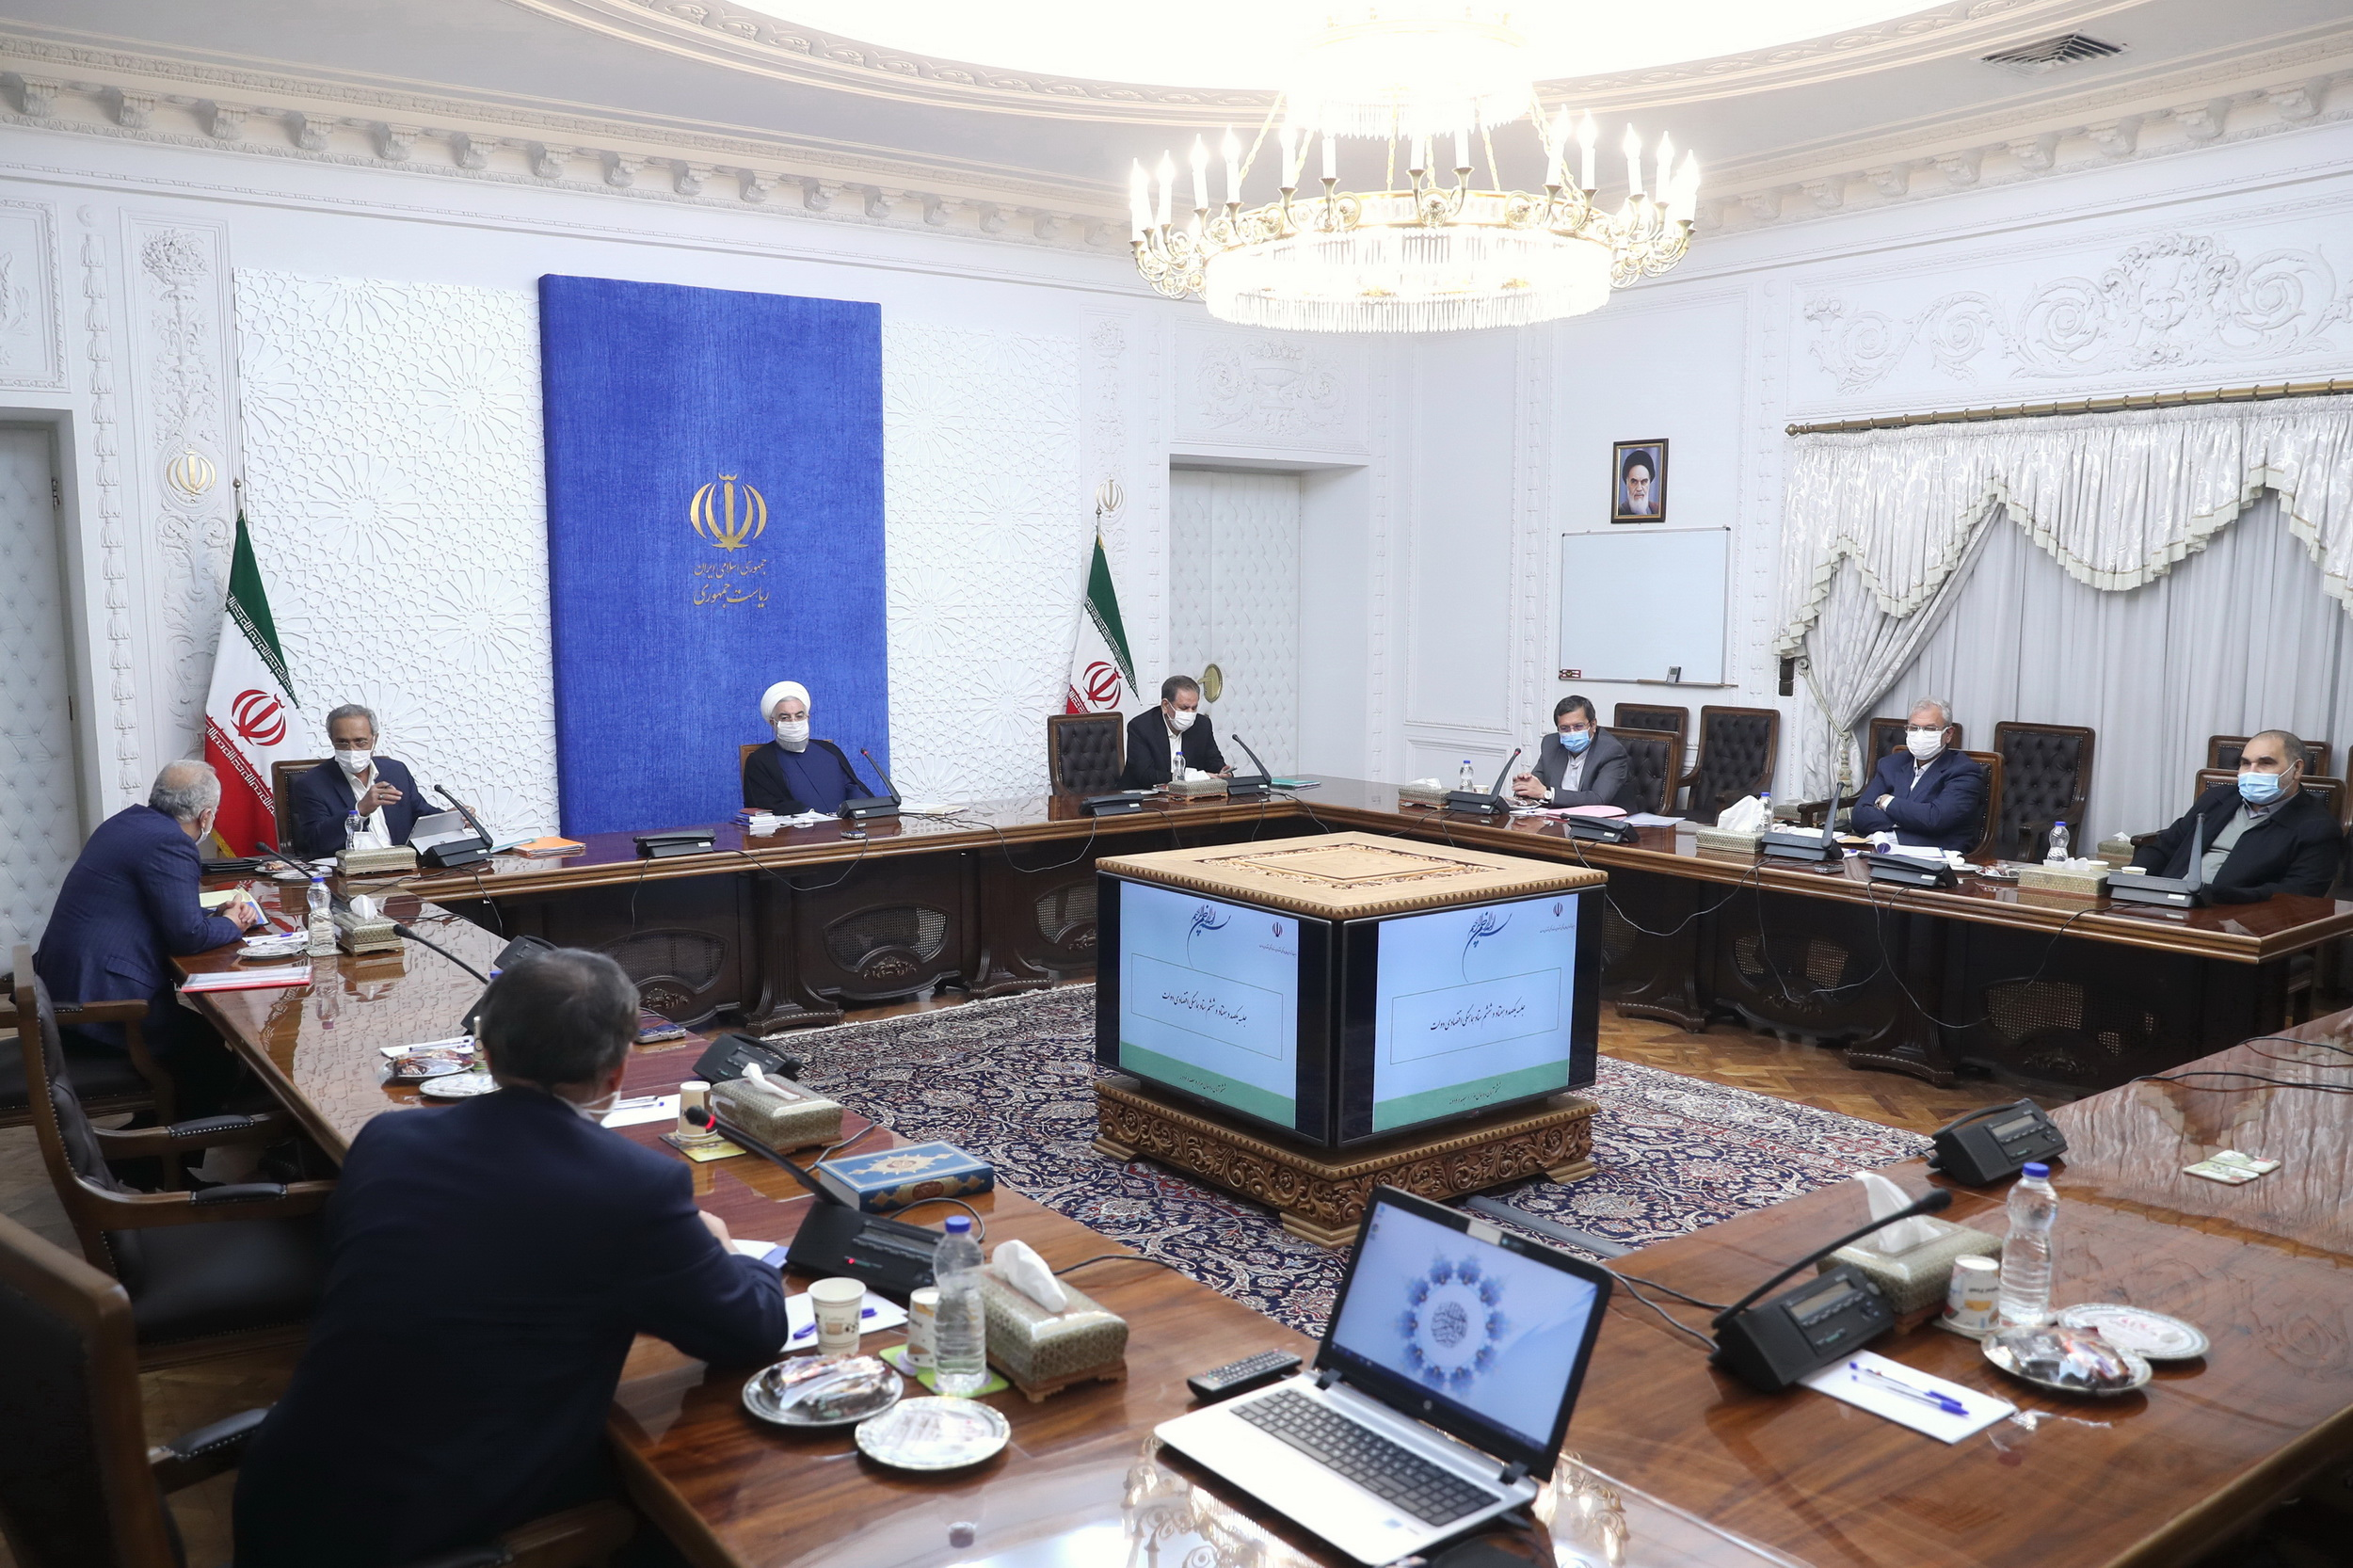 Extraordinary meeting of the Cabinet's Economic Coordination Board